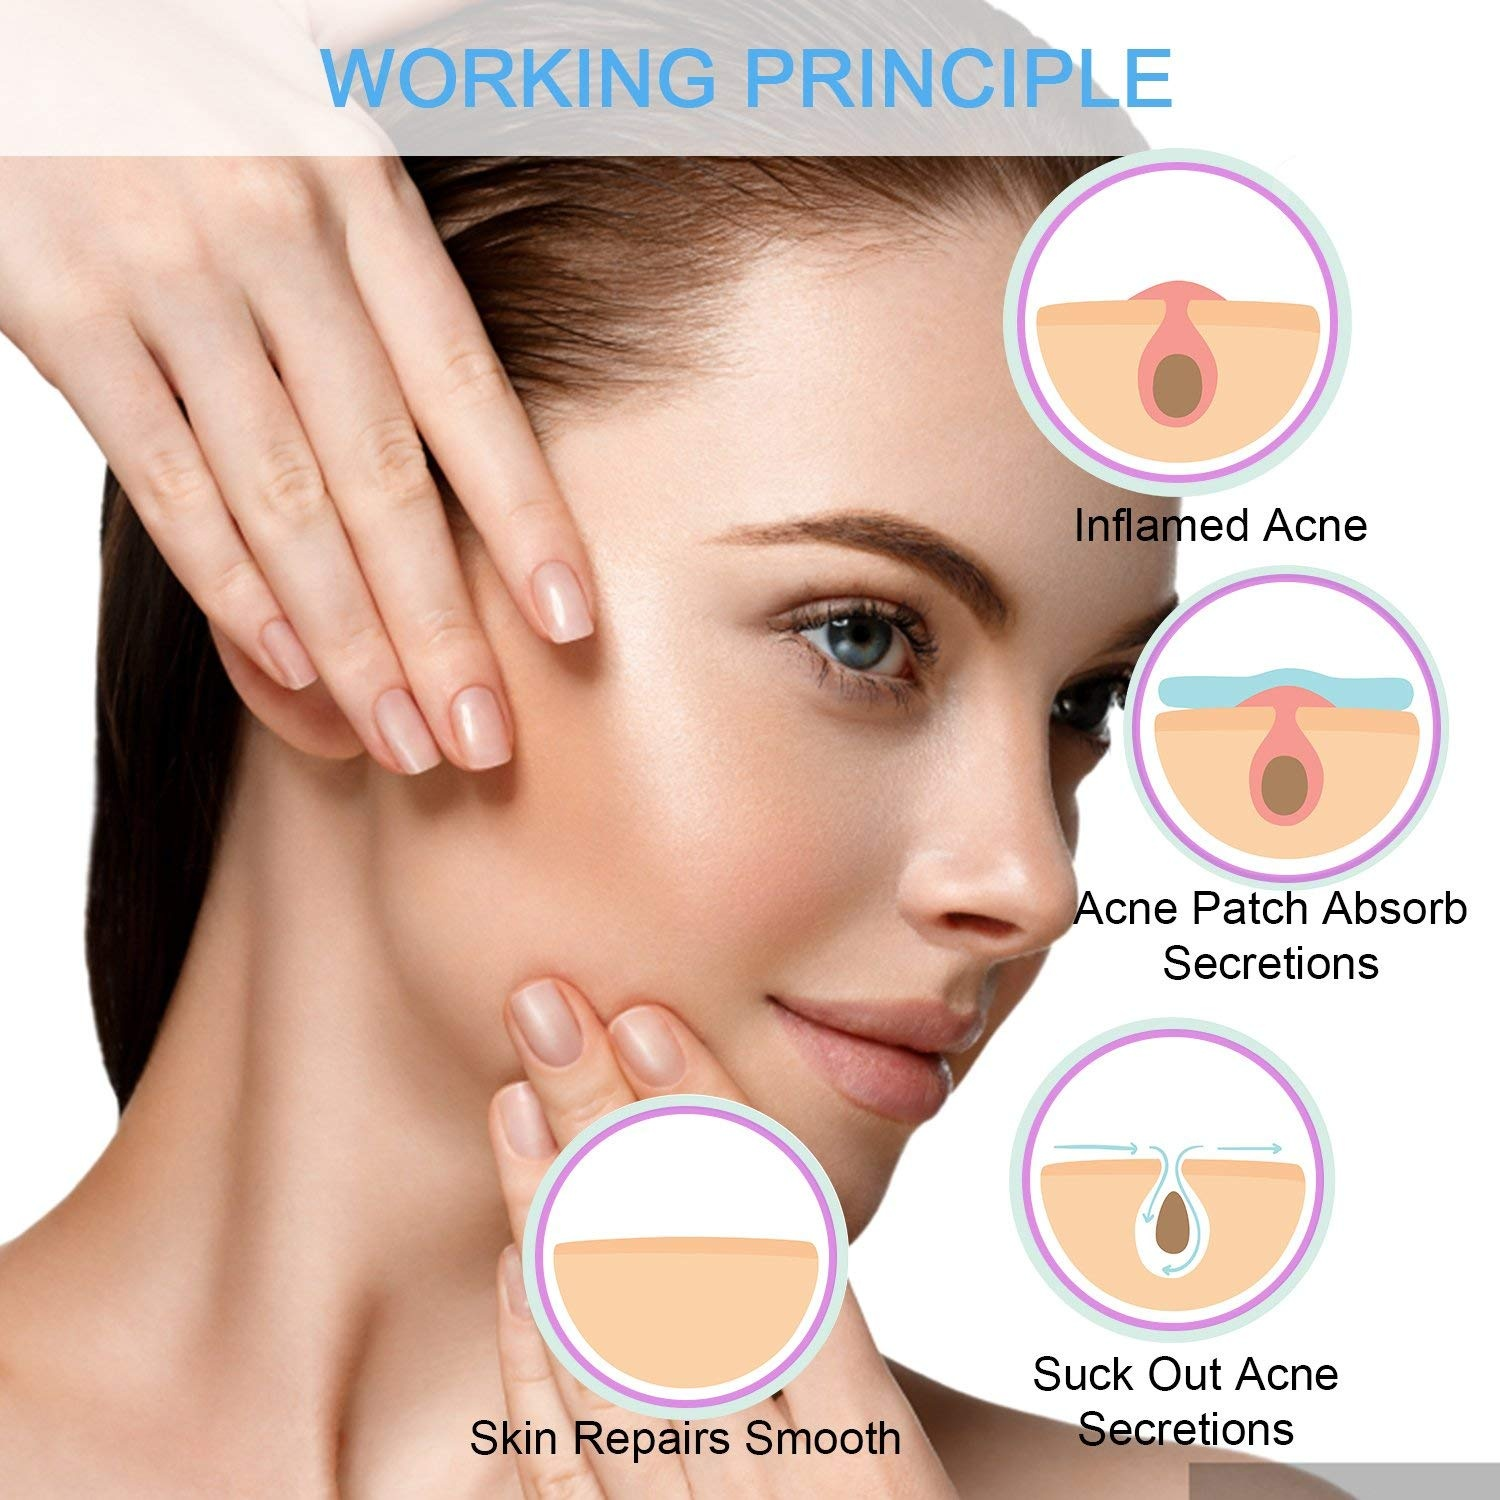 Working Principle of Acne Patch